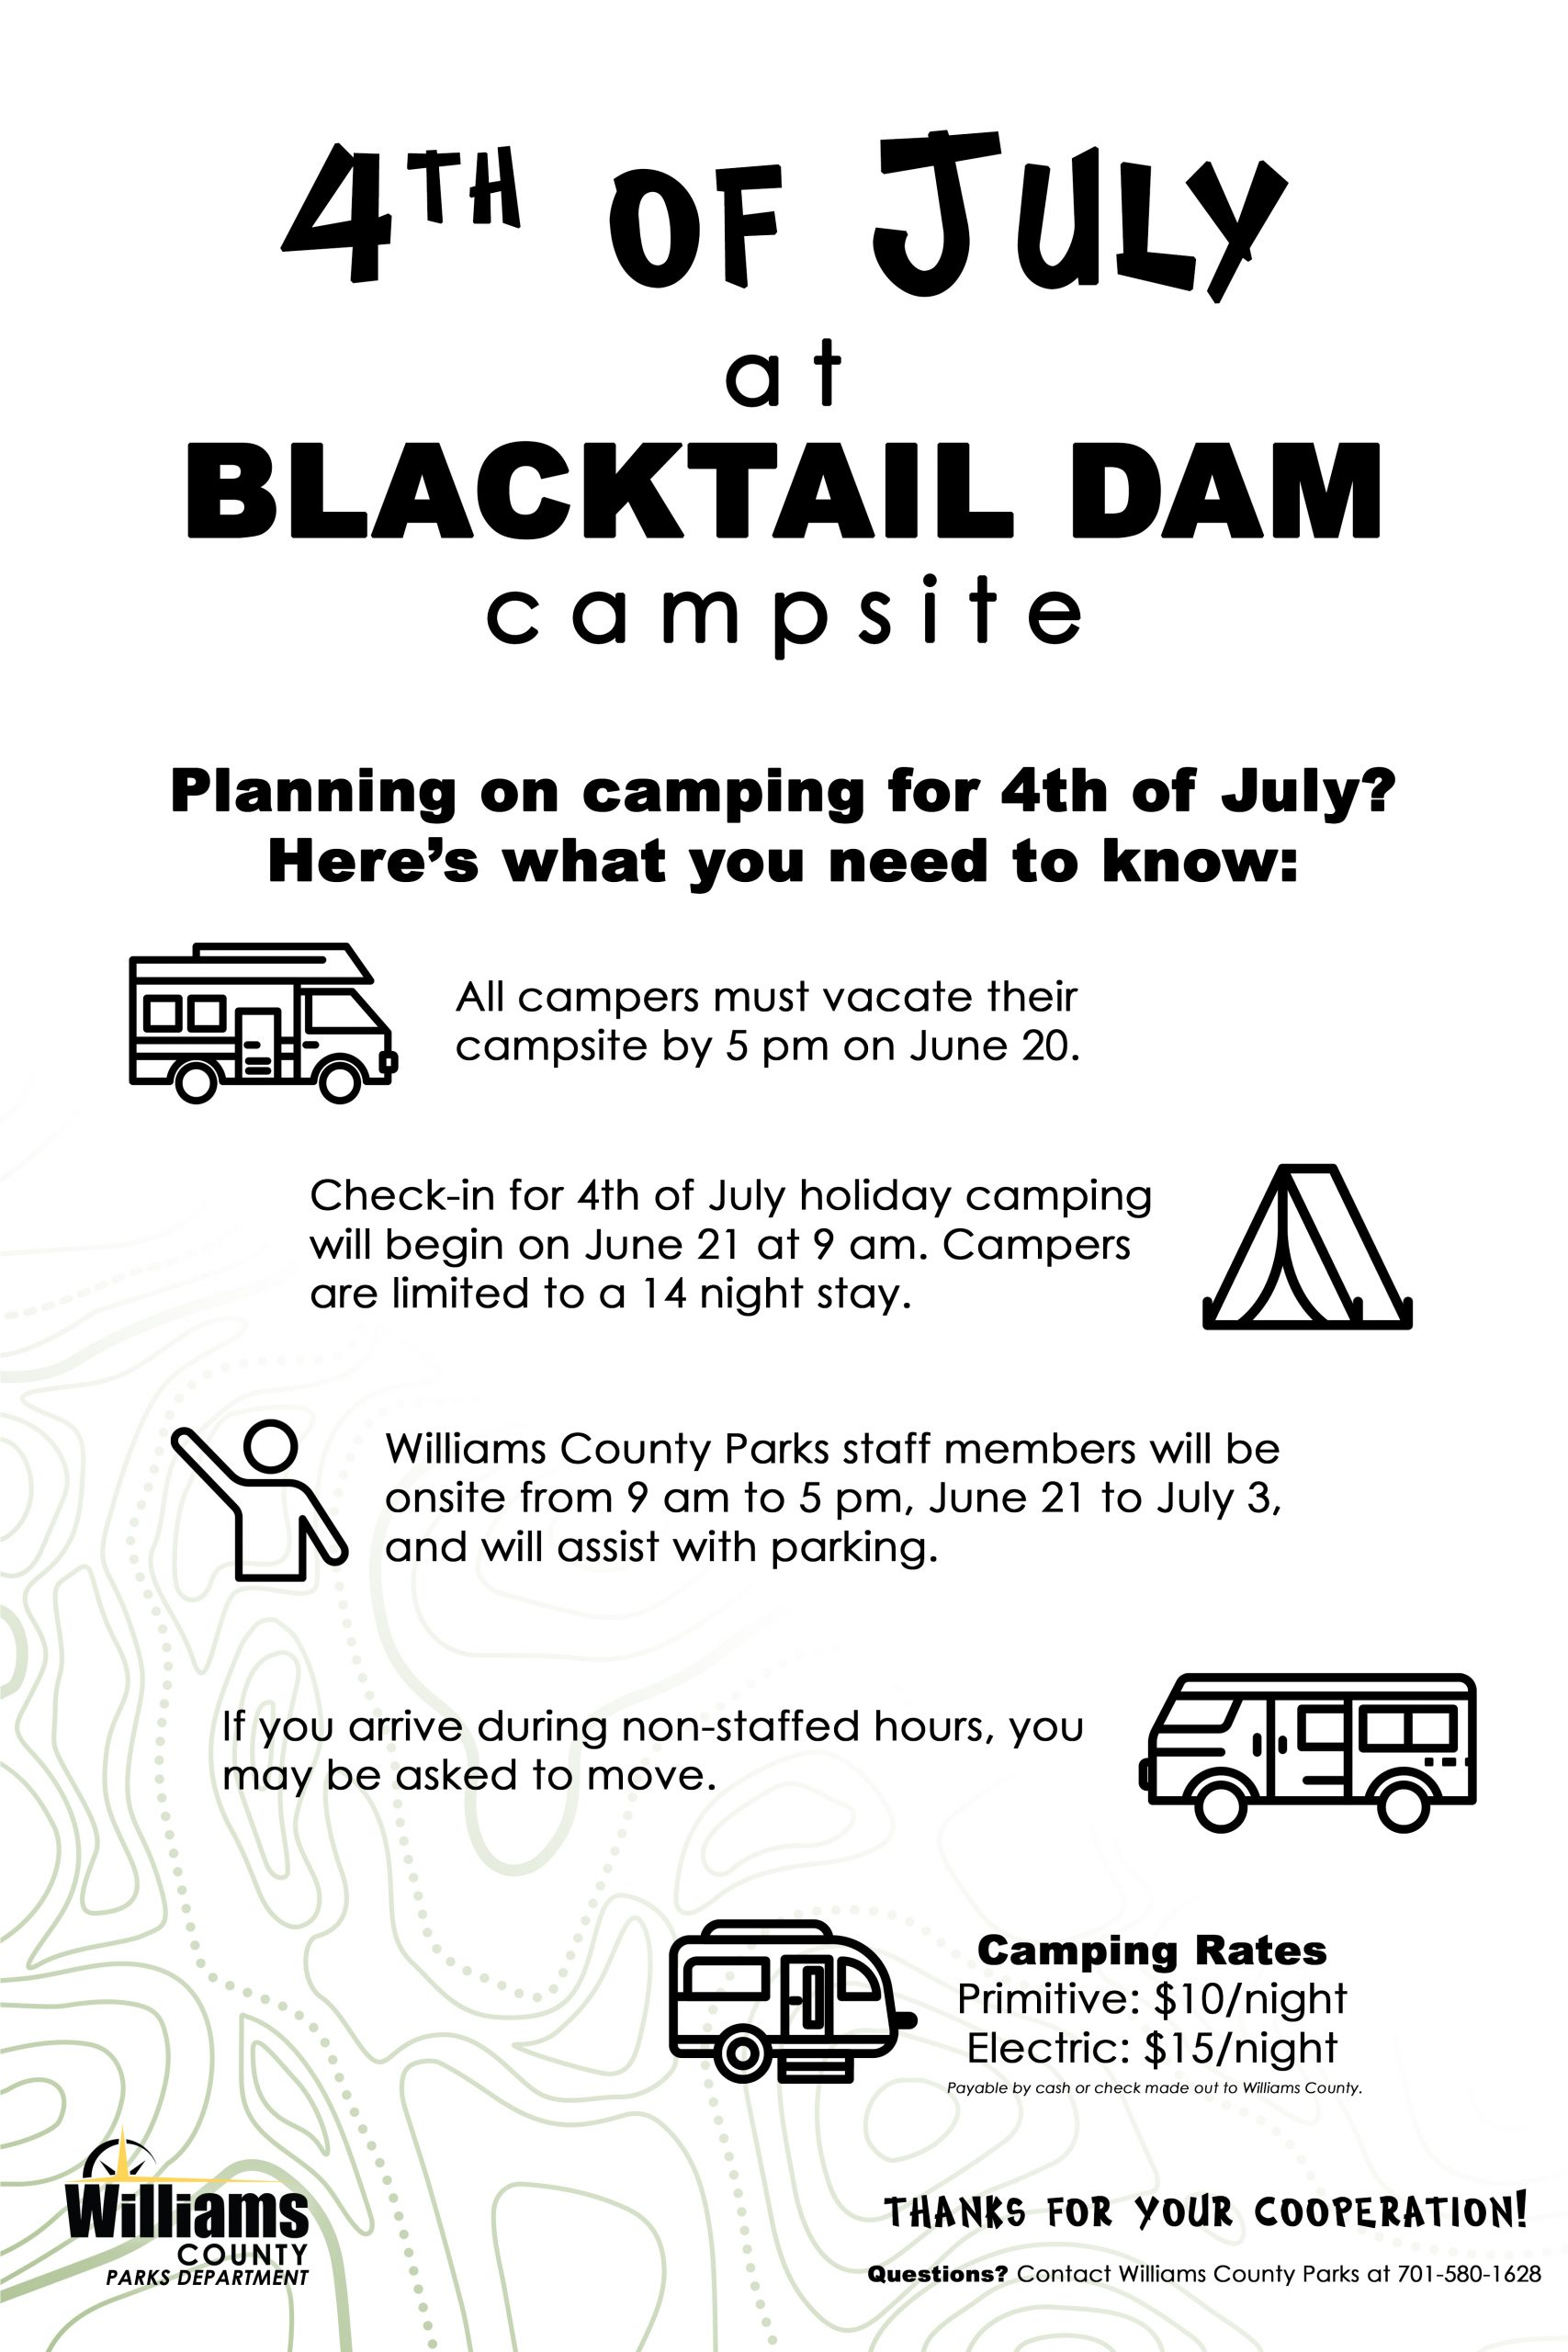 Sign with information about 4th of July camping at Blacktail Dam